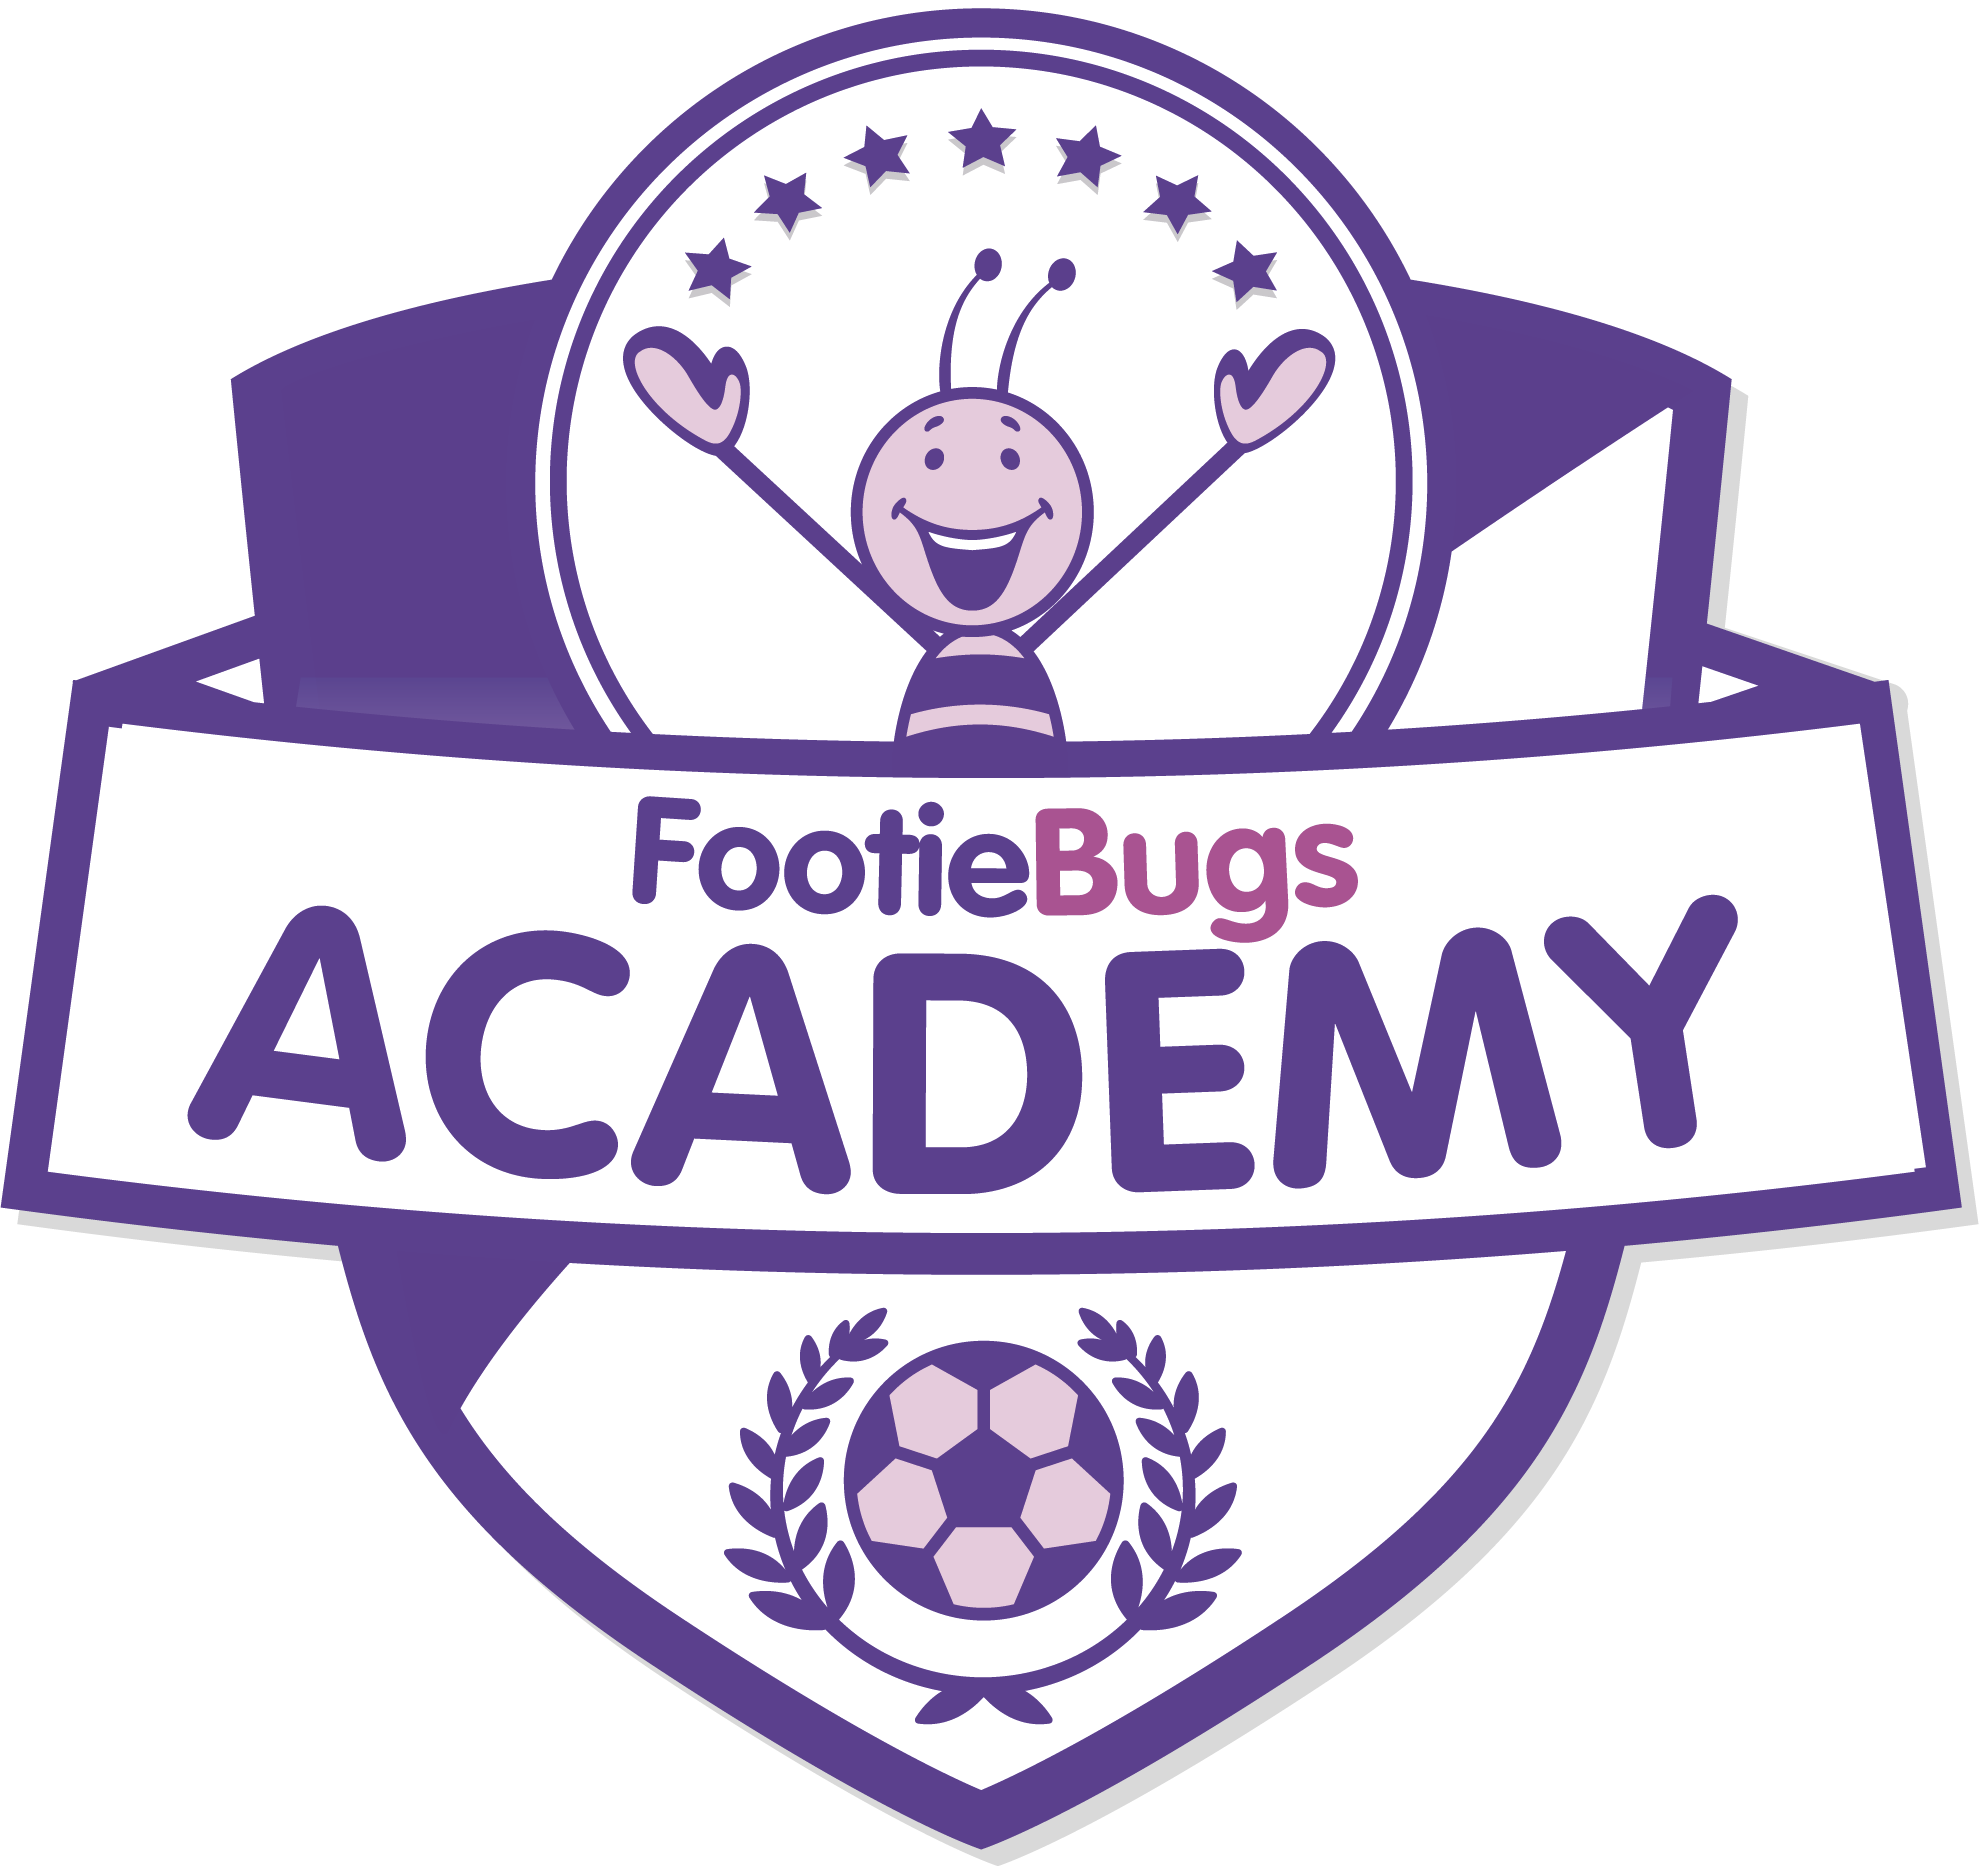 FootieBugs Children's Football Academy in Solihull